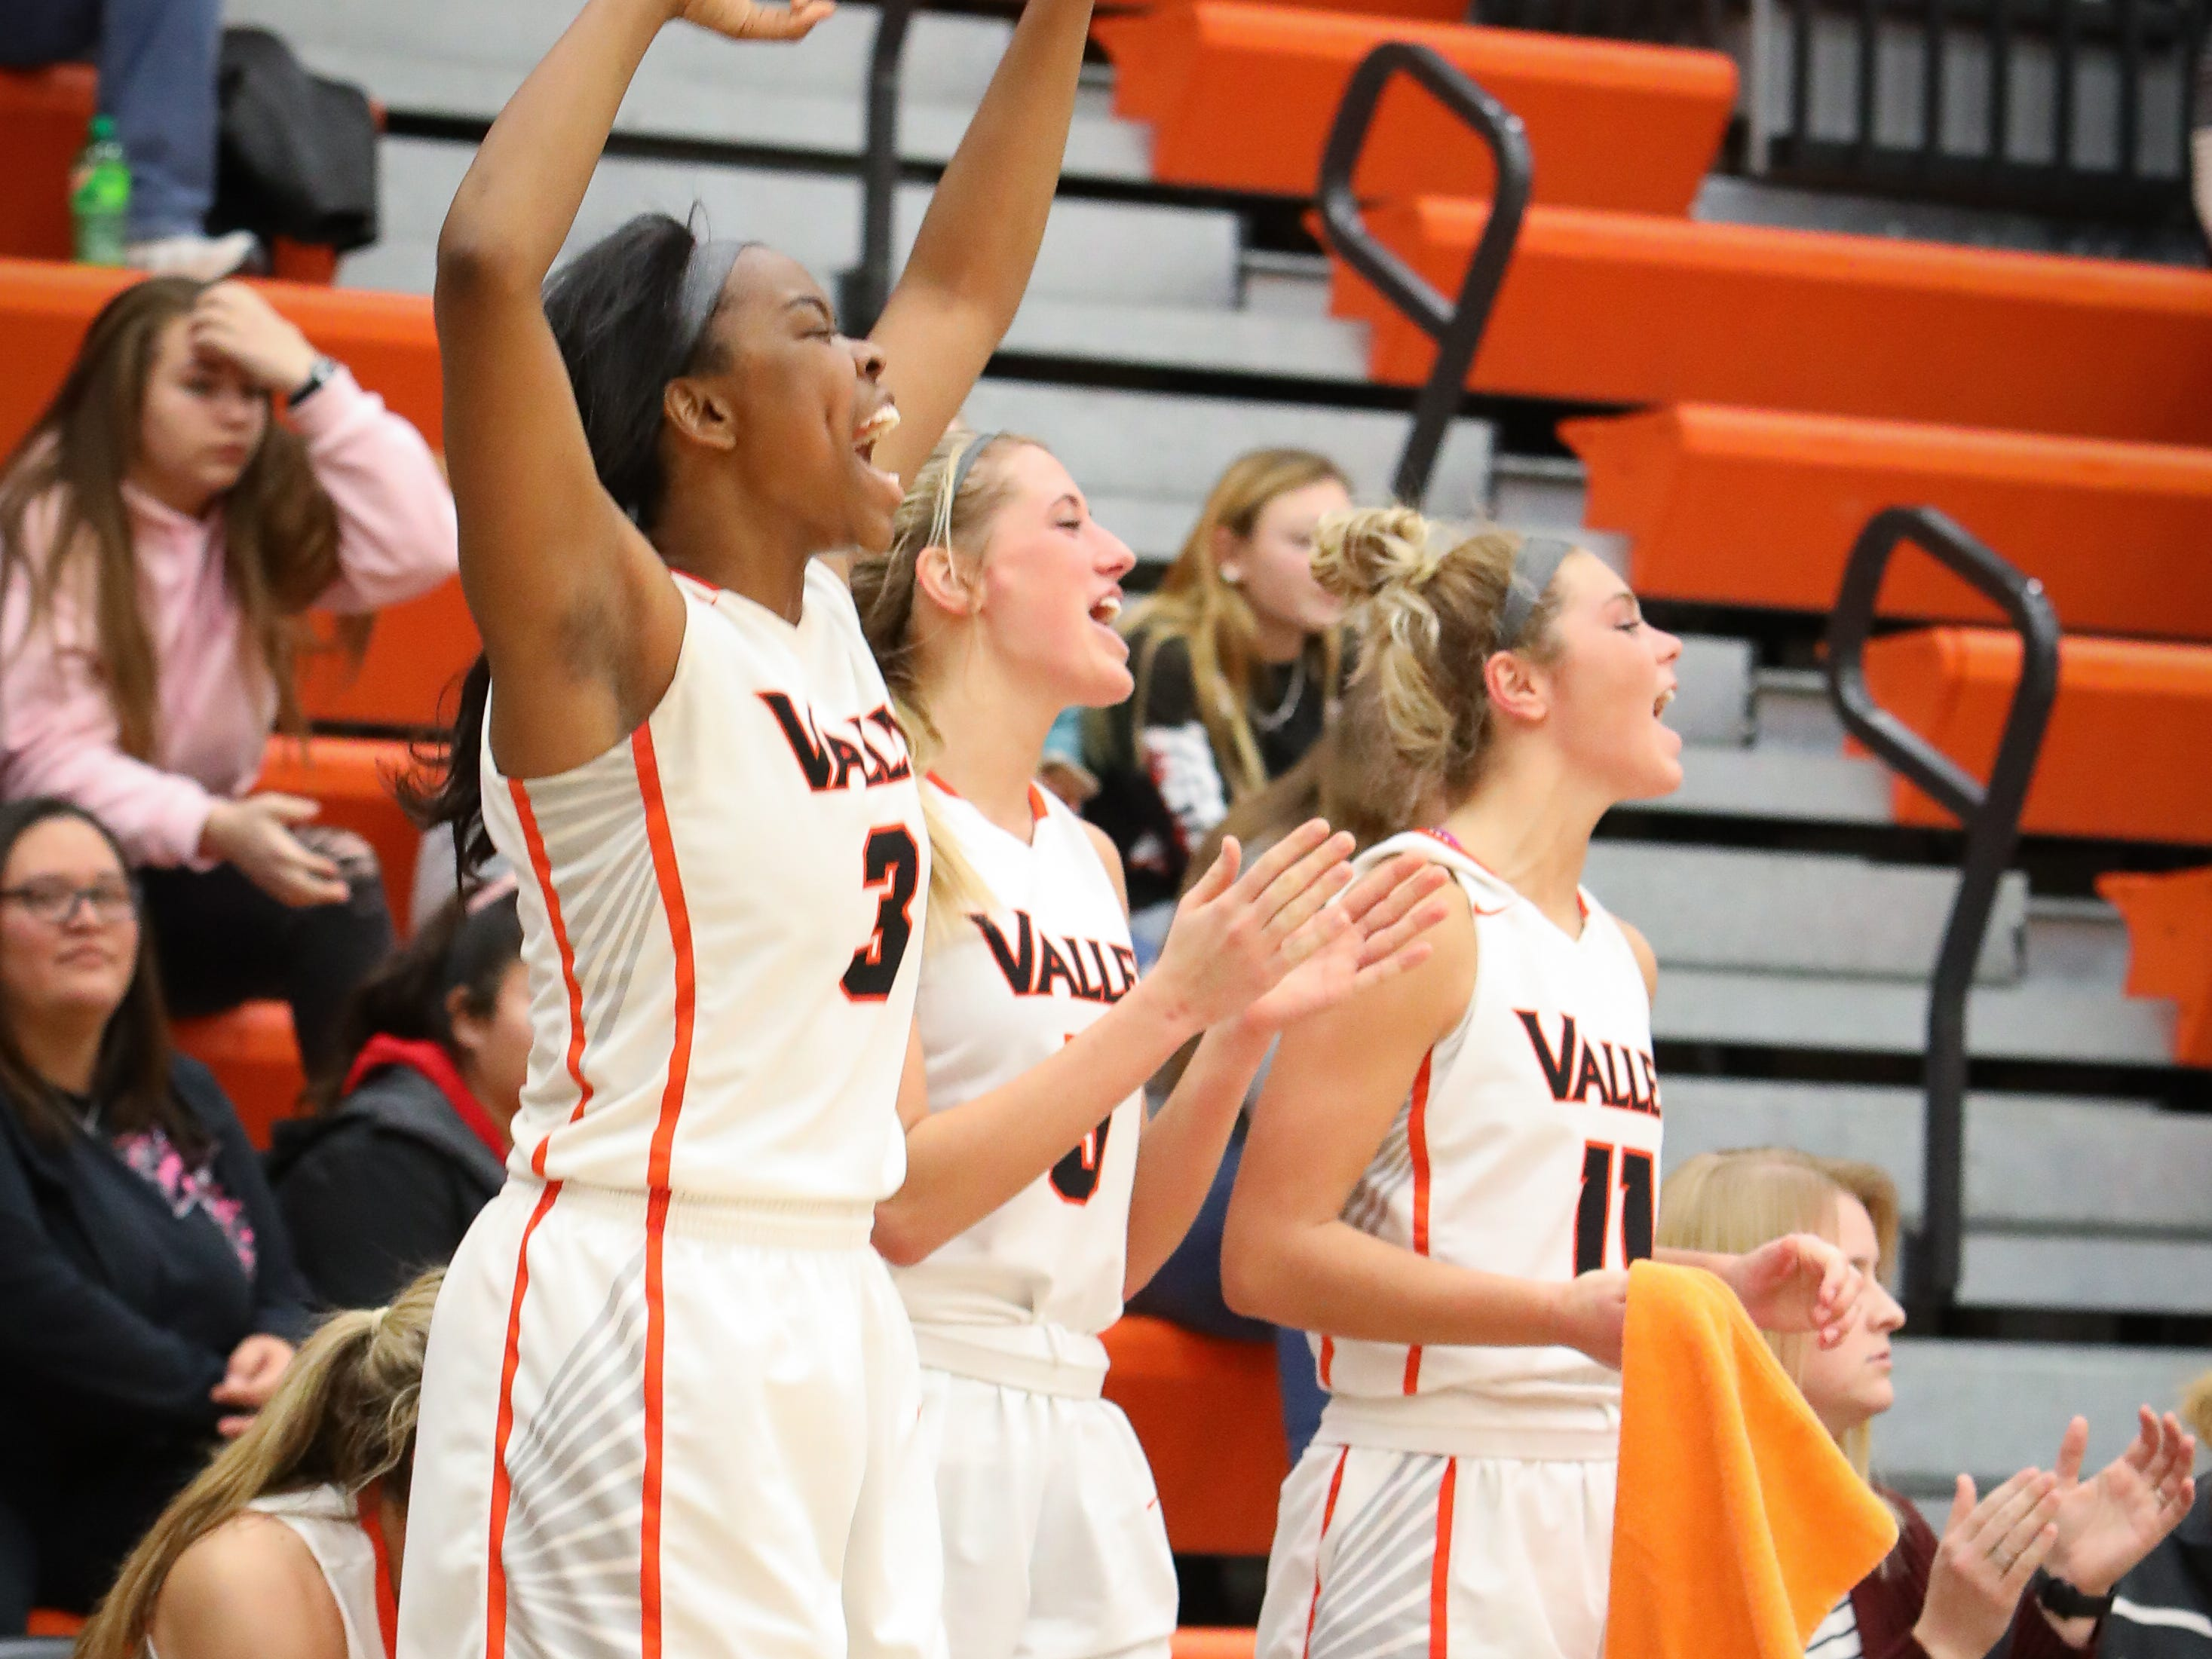 Members of the Valley bench cheer on their teammates during a girls high school basketball game between the East Scarlets and the Valley Tigers at Coldiron Fieldhouse at Valley High School on Jan. 8, 2019 in West Des Moines, Iowa.